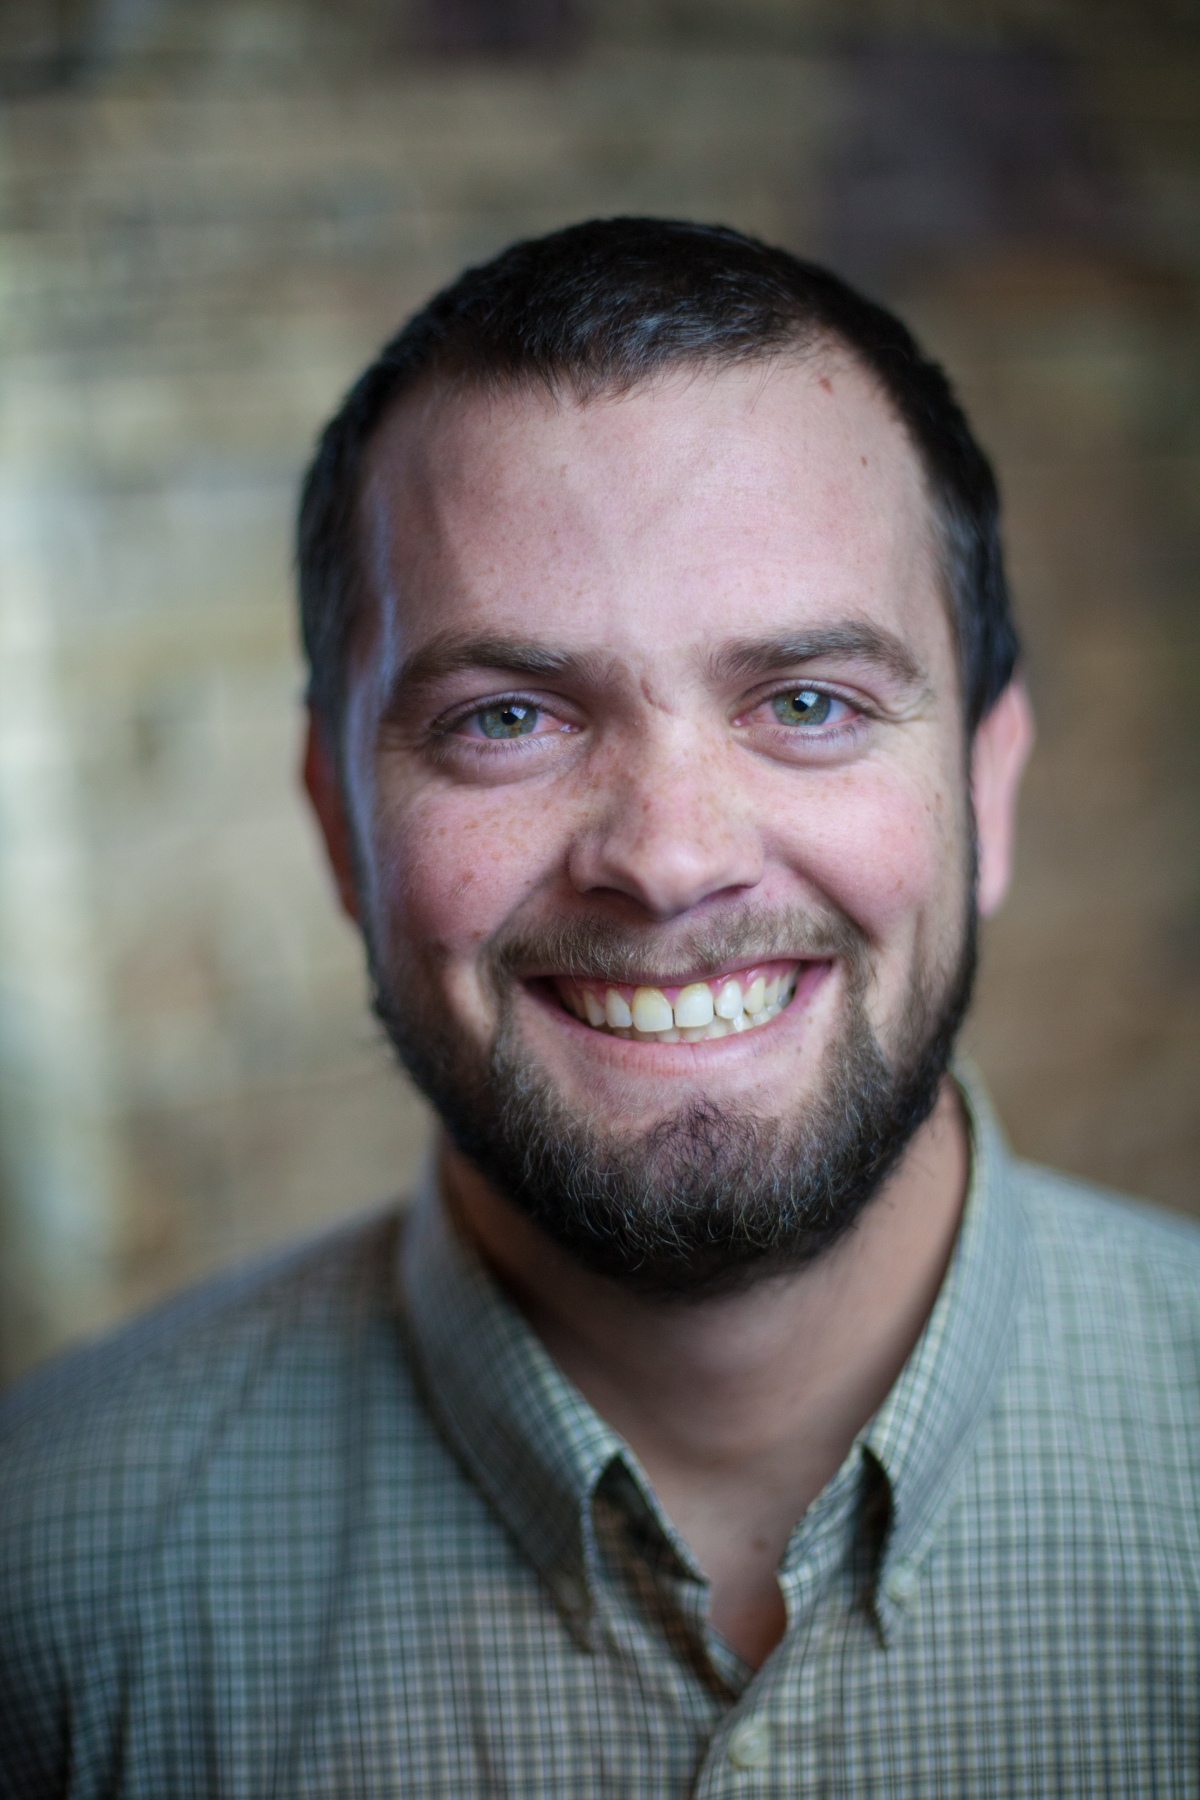 Joey LeSuer, Director of Family Life Ministries